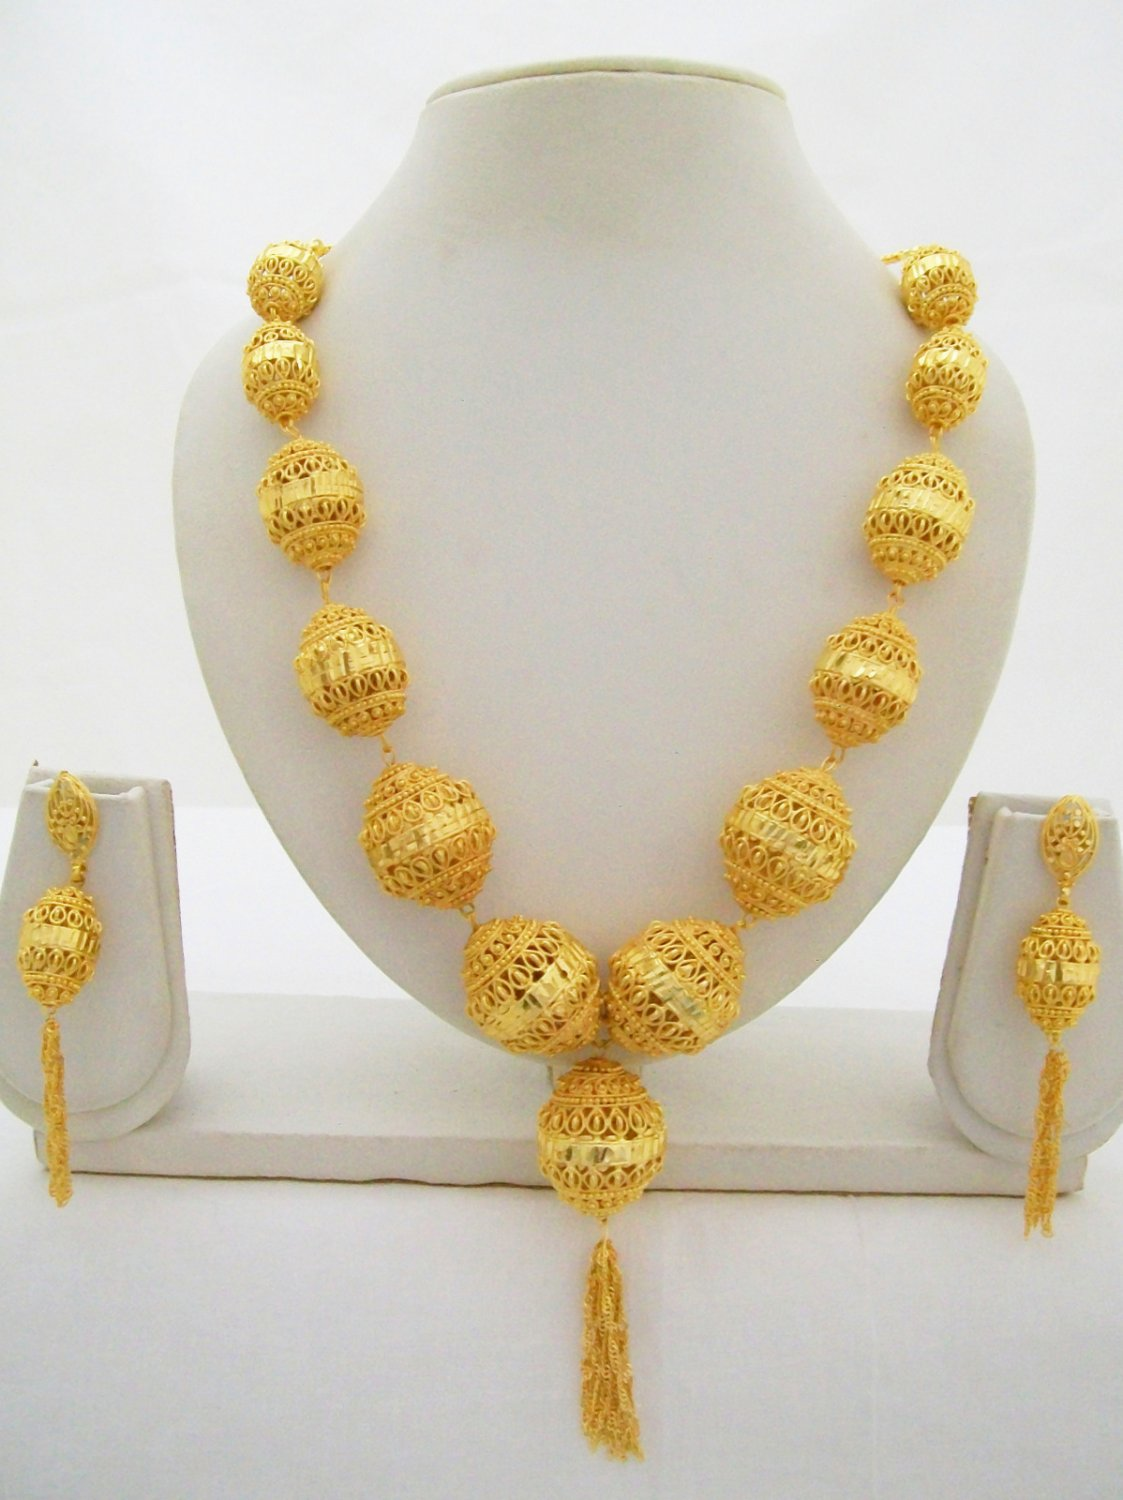 Filigree Beads Ball Yellow Gold Plated Long Chain Necklace Indian Jewelry Set & Filigree Beads Ball Yellow Gold Plated Long Chain Necklace Indian ...